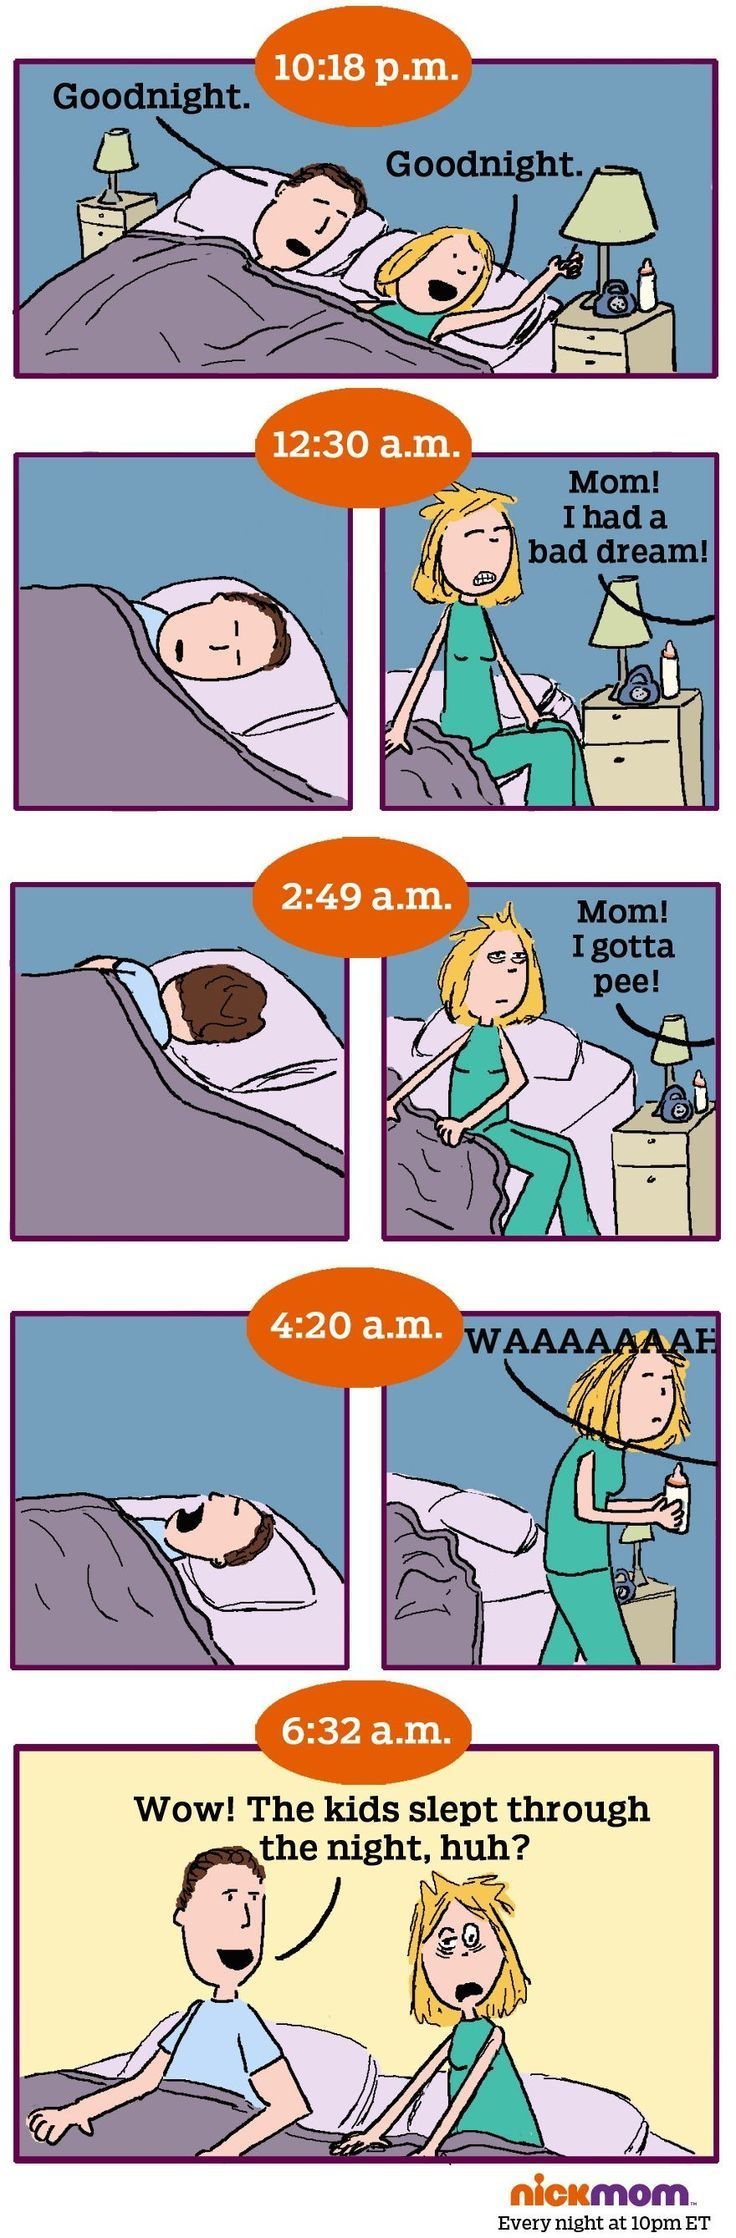 Check out this funny cartoon about kids sleeping through